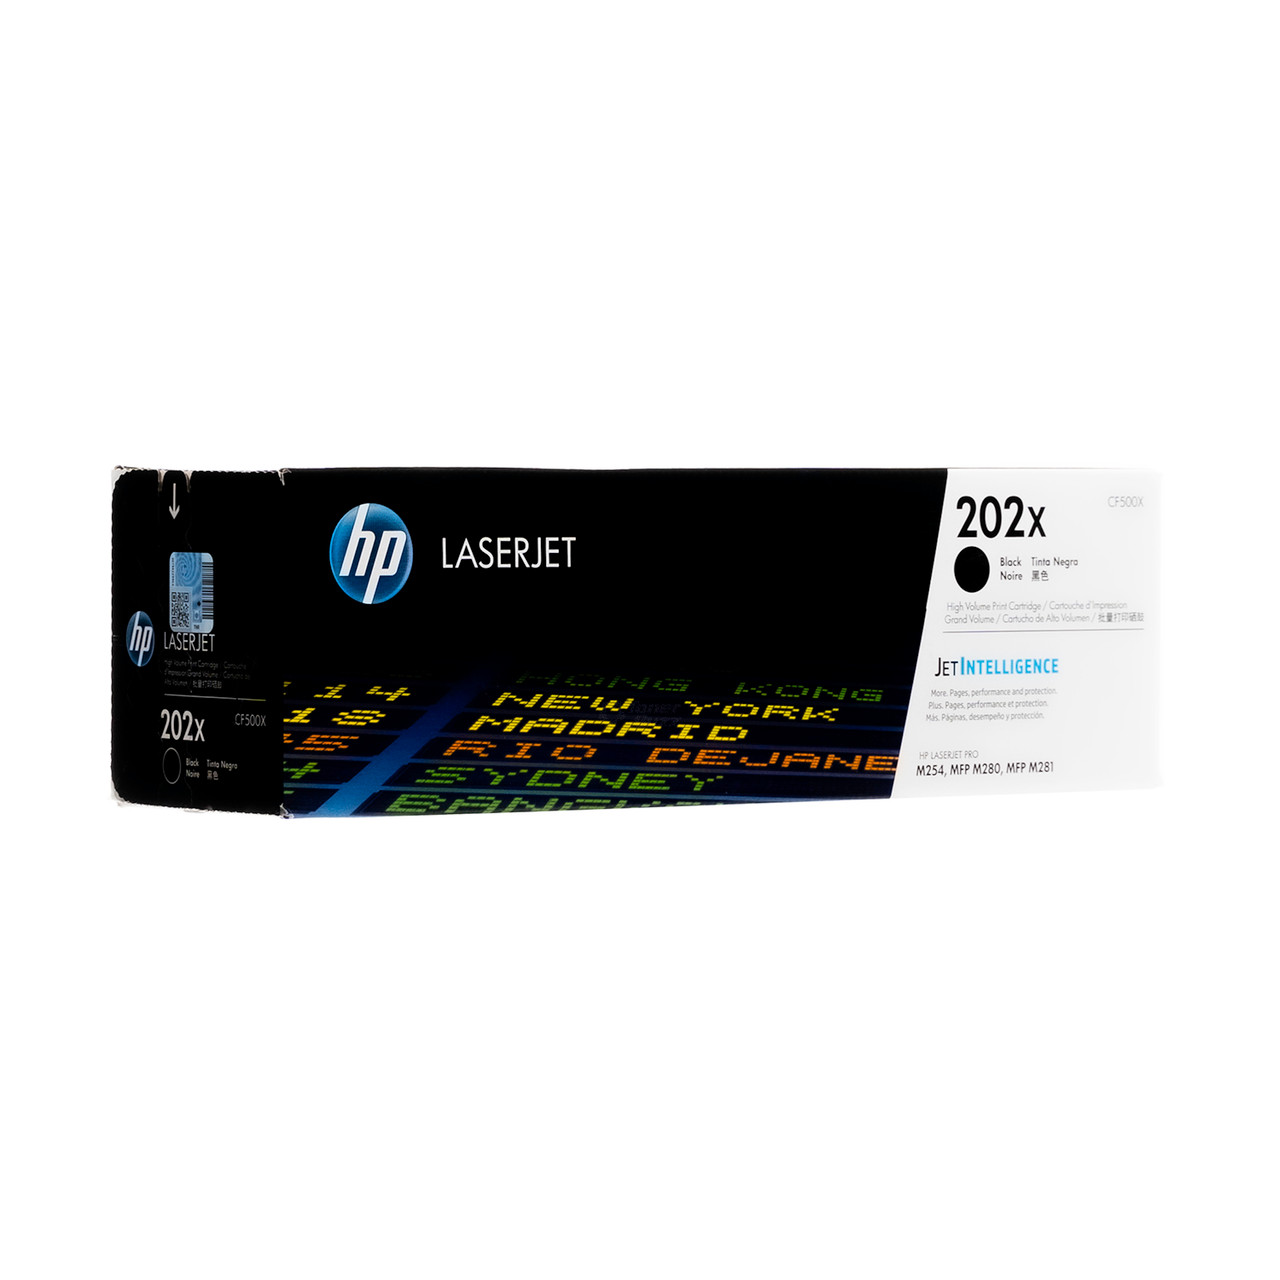 8PK CF500X Toner Cartridge For HP 202X Color LaserJet M254dw M281cdw M281fdw MFP